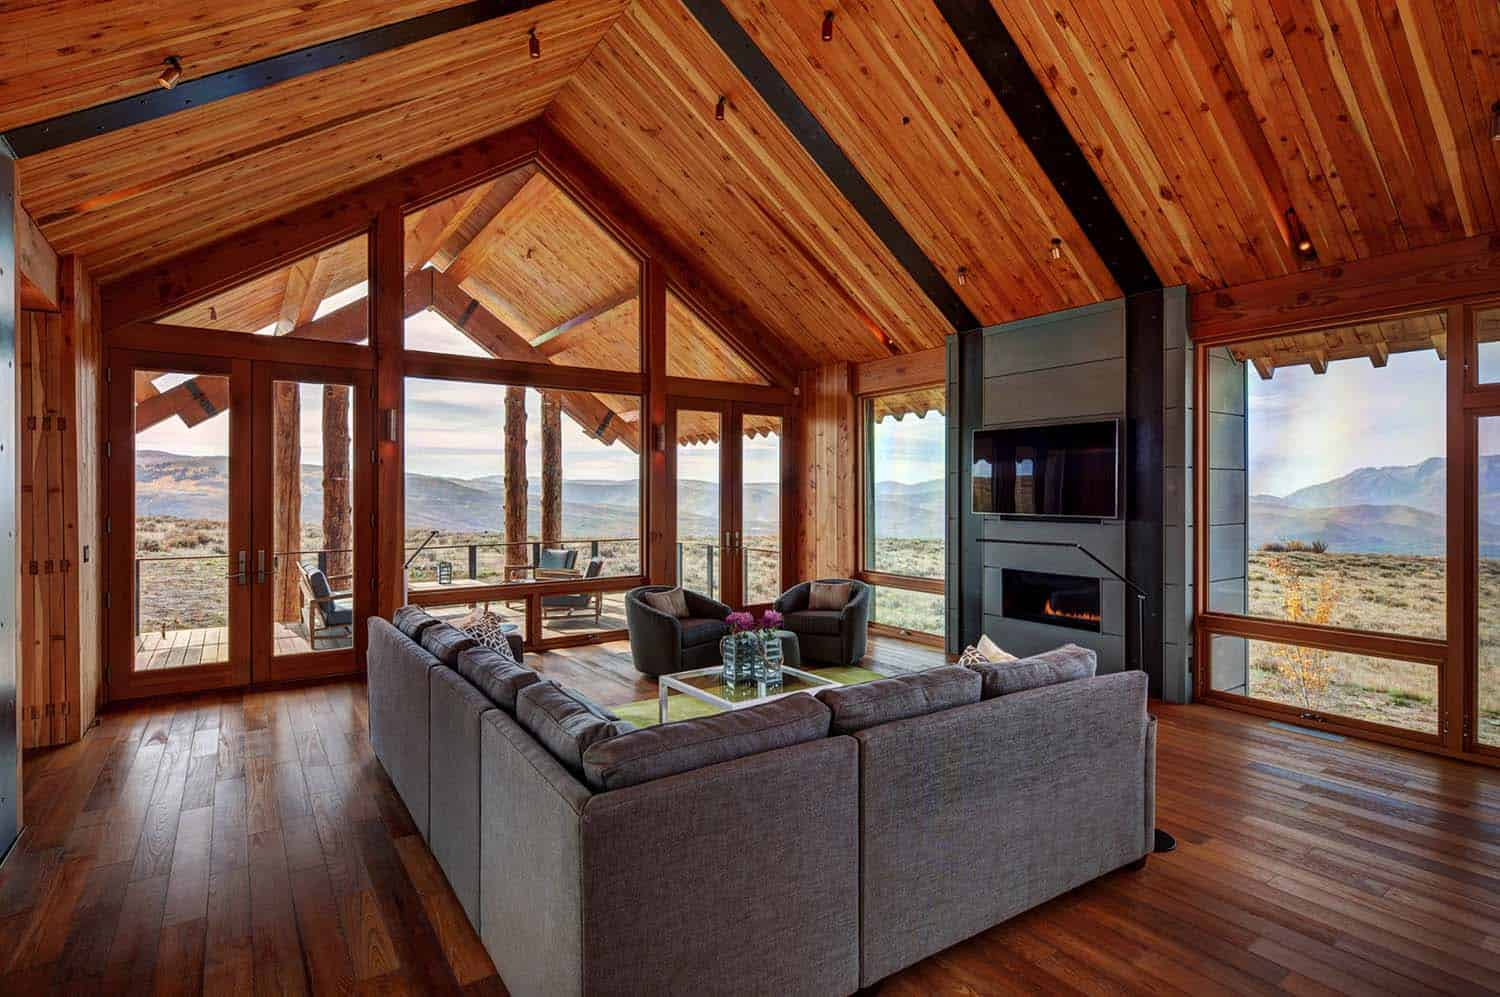 Modern Rustic Log Home-Shubin Donaldson Architects-09-1 Kindesign